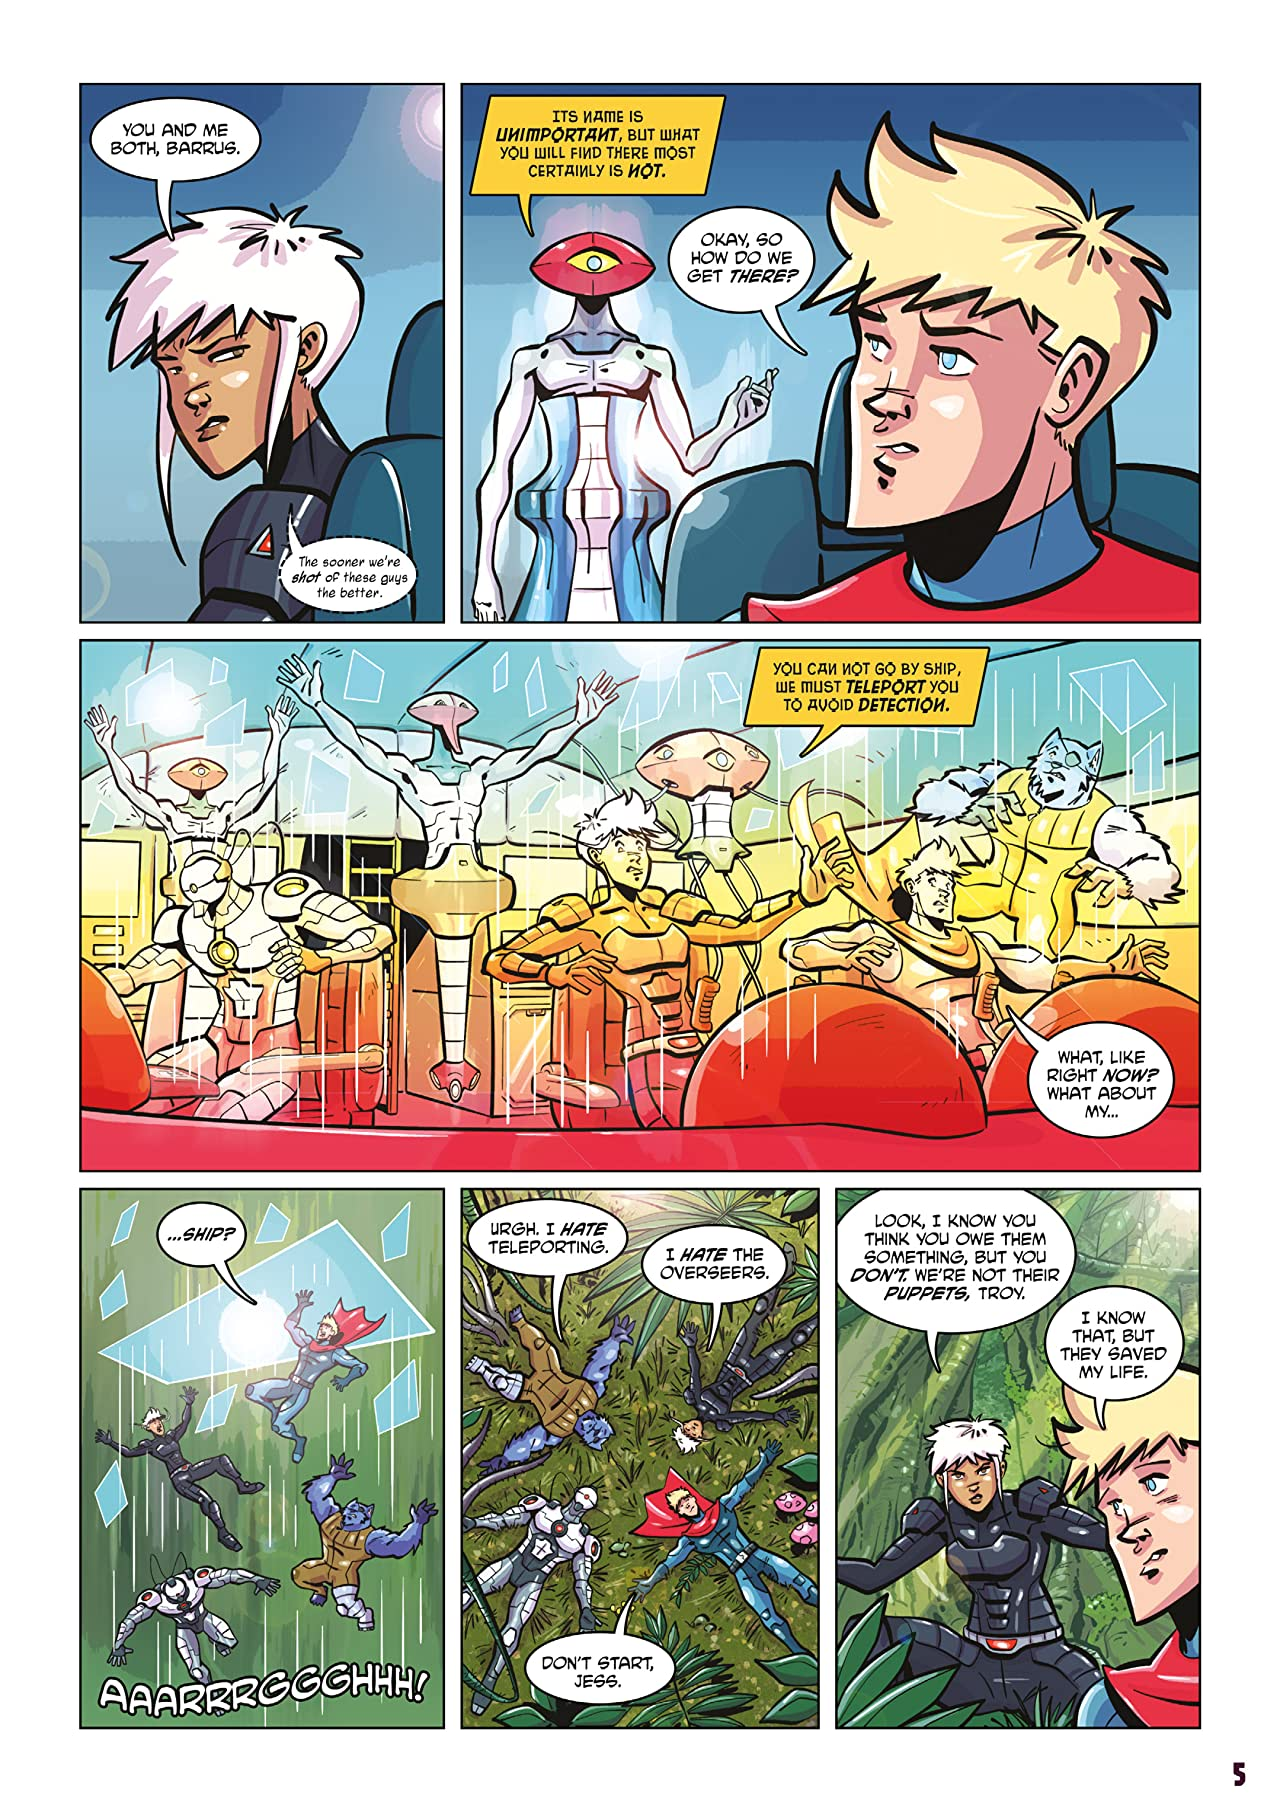 The Phoenix #315: The Weekly Story Comic